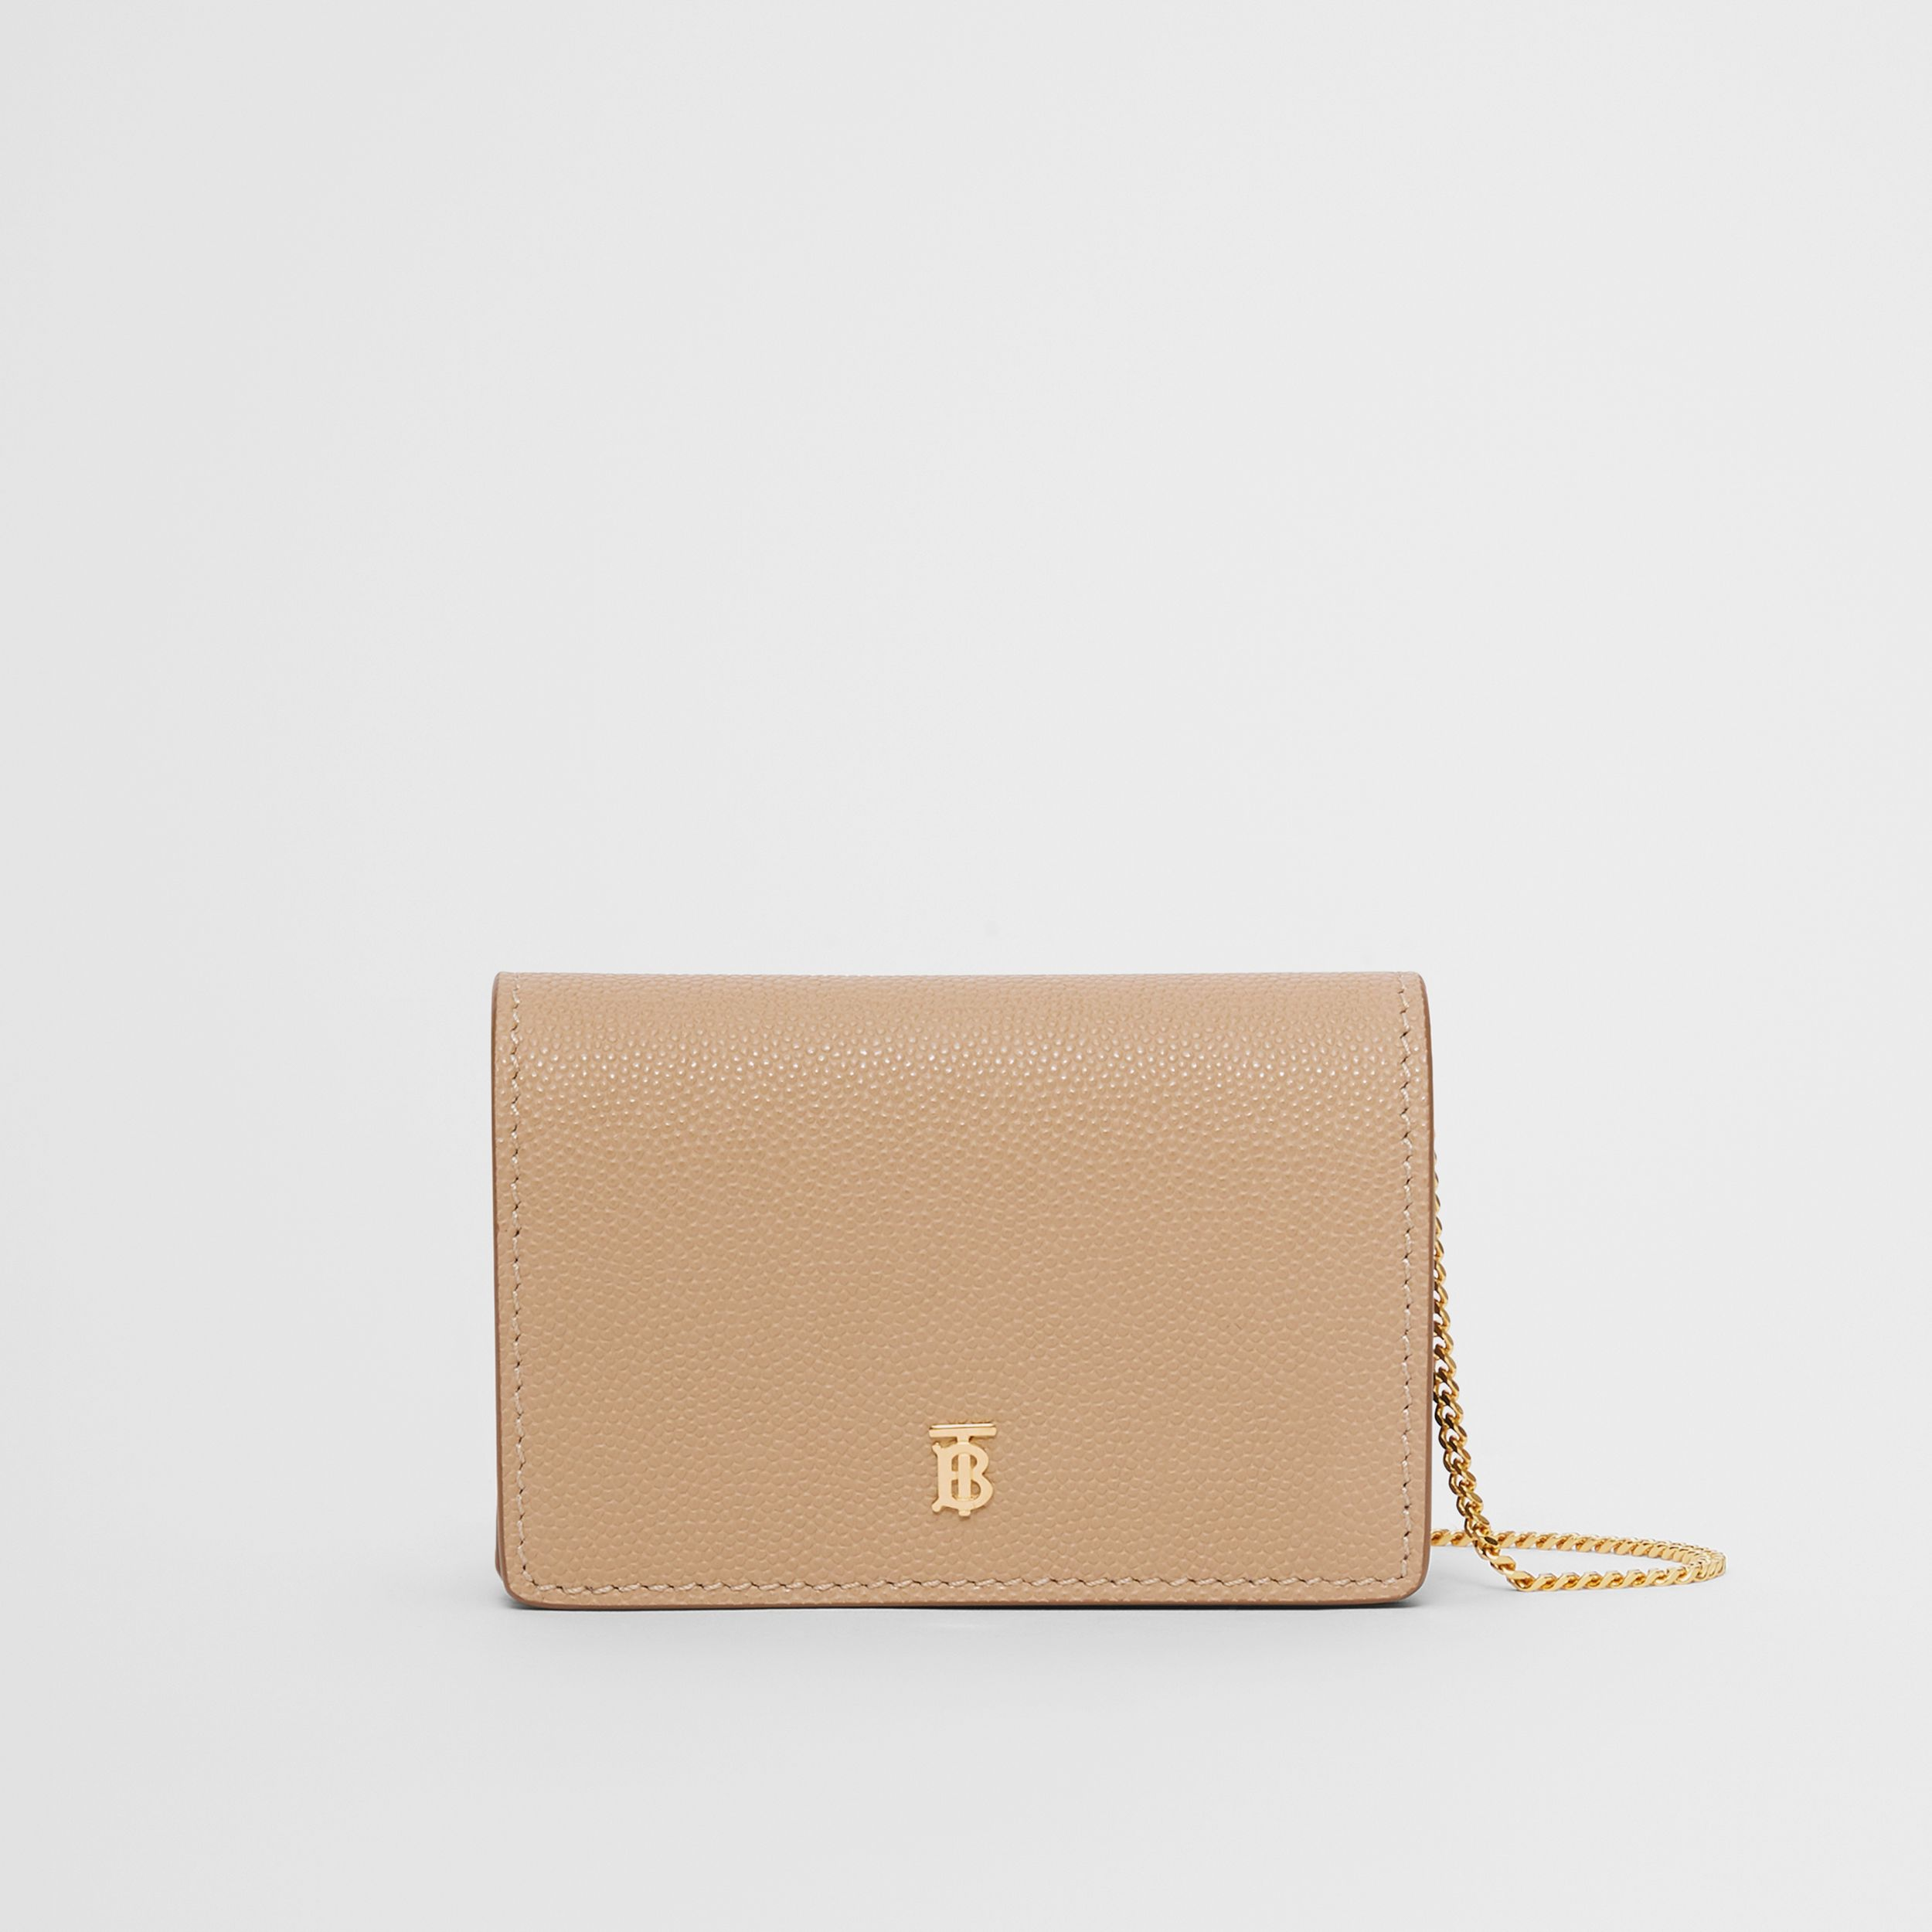 Grainy Leather Card Case with Detachable Strap in Archive Beige - Women | Burberry - 1